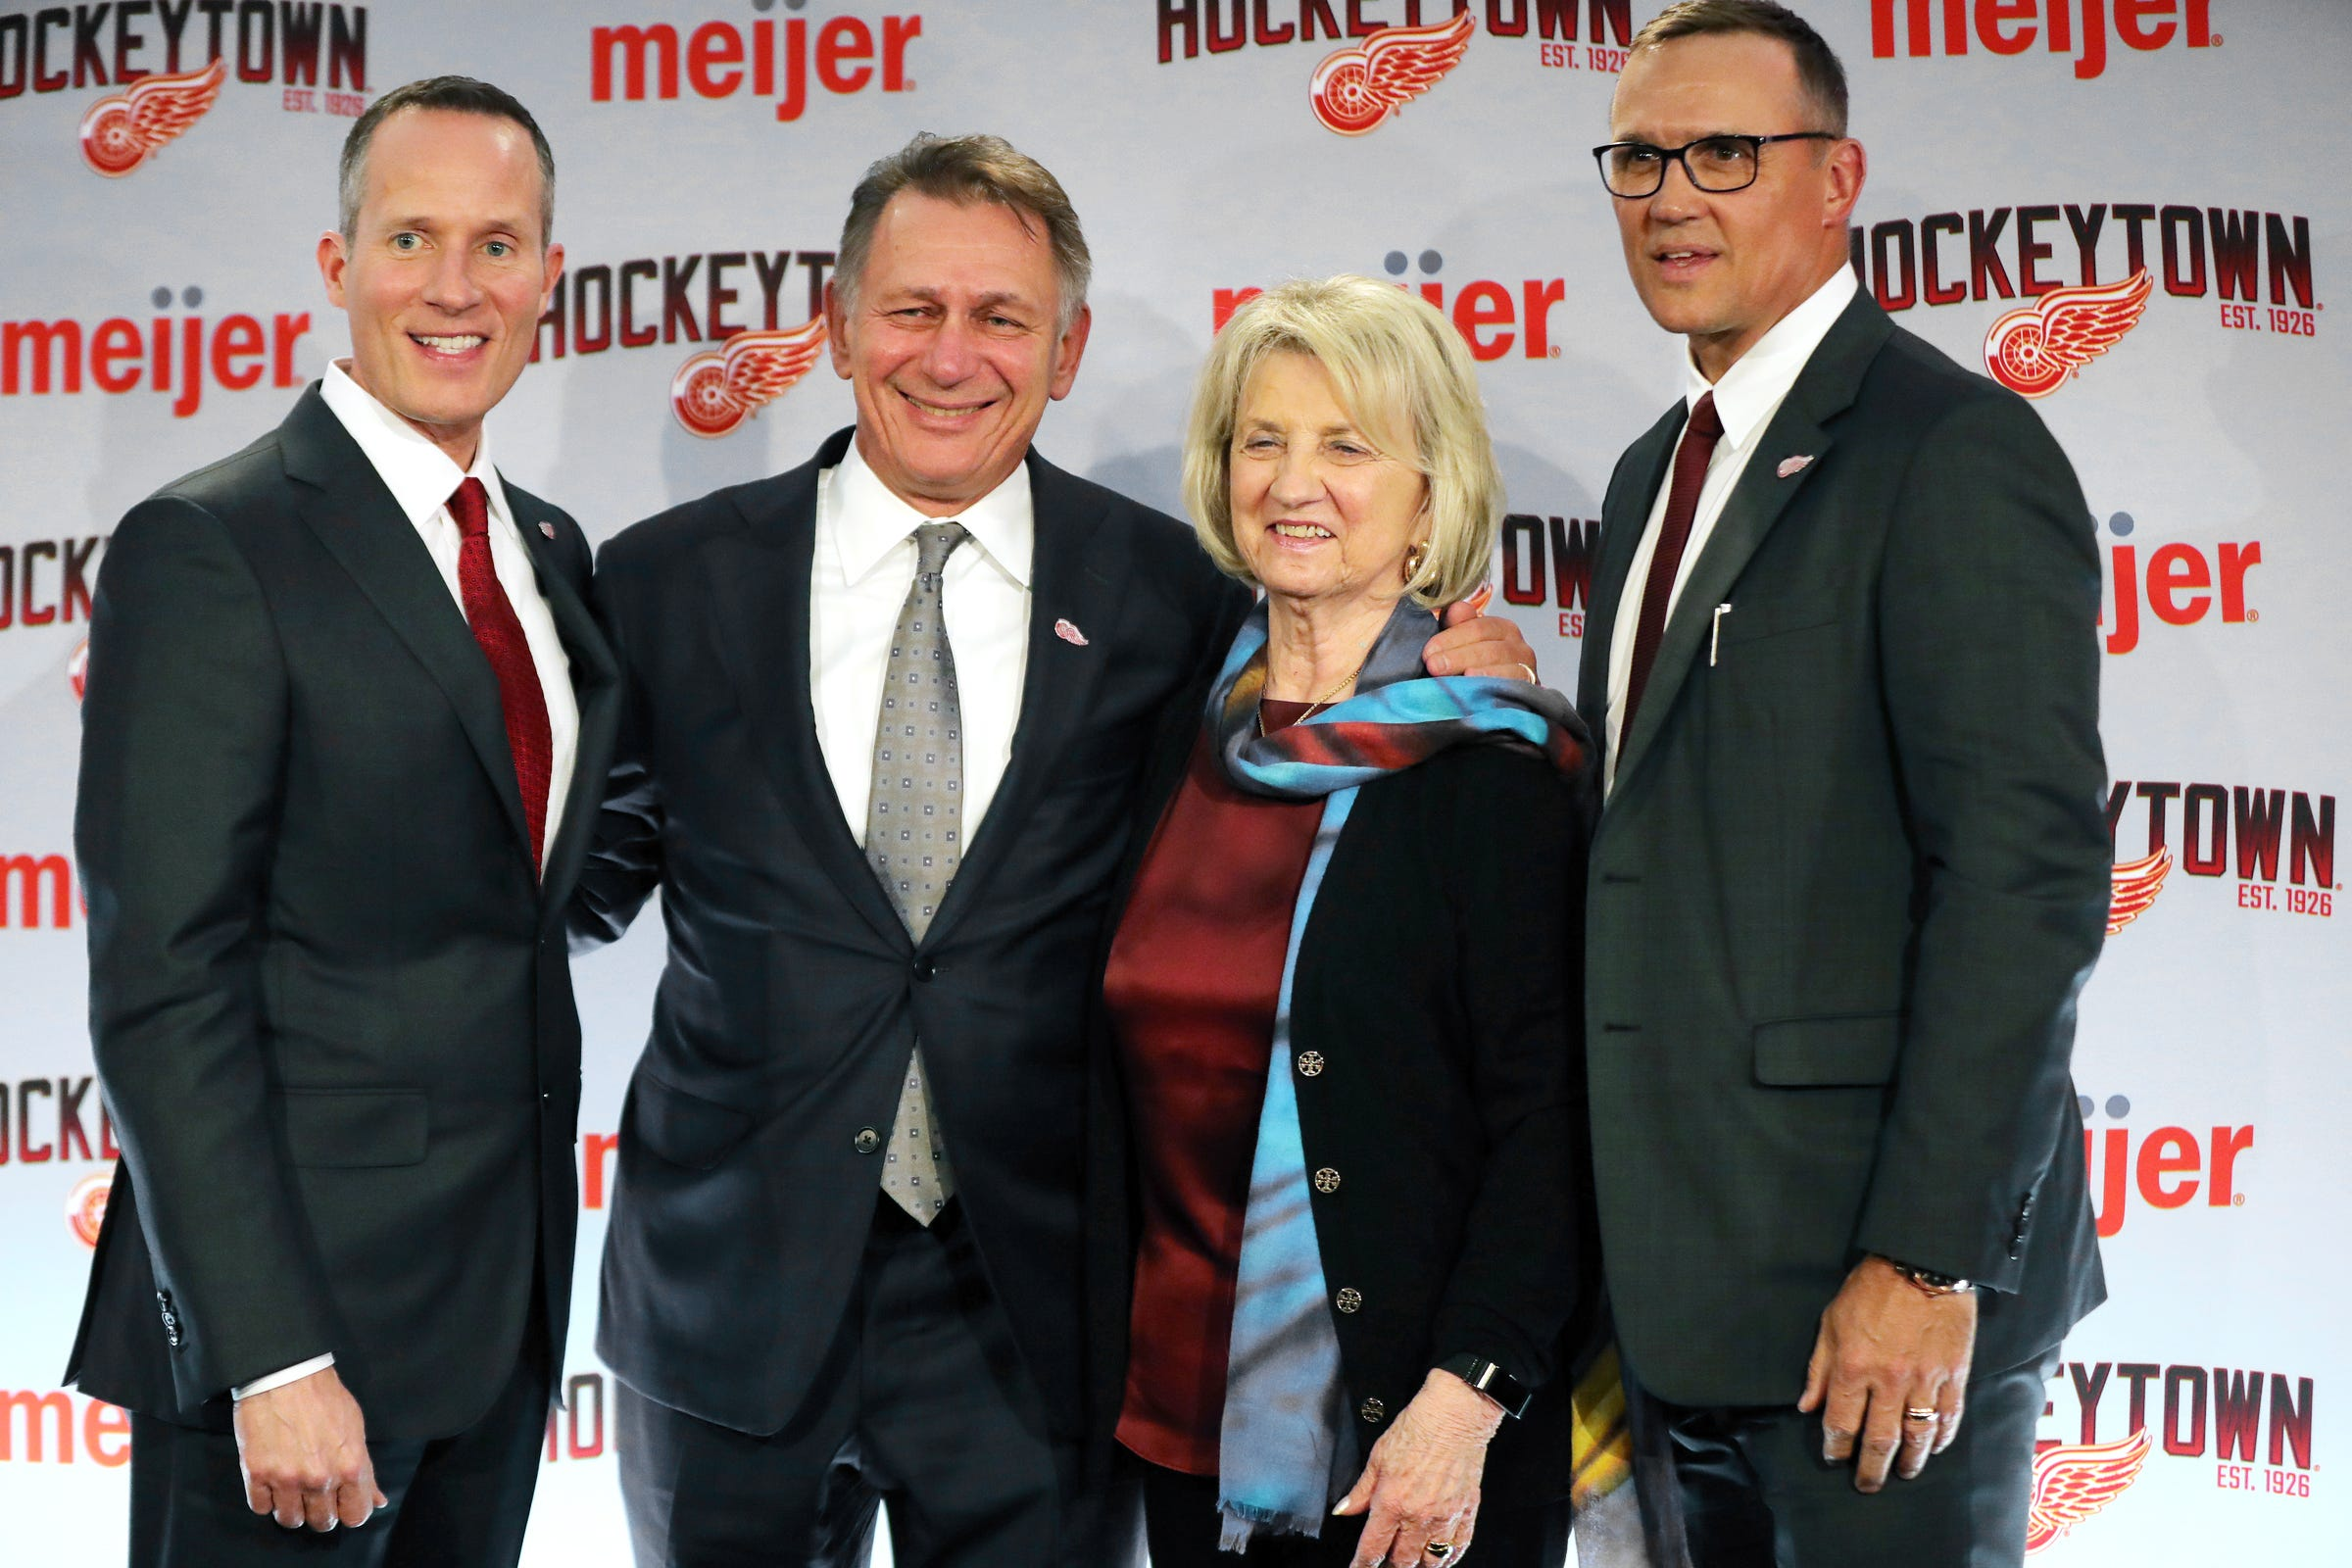 Steve Yzerman's return to Red Wings would have made Mr. I proud